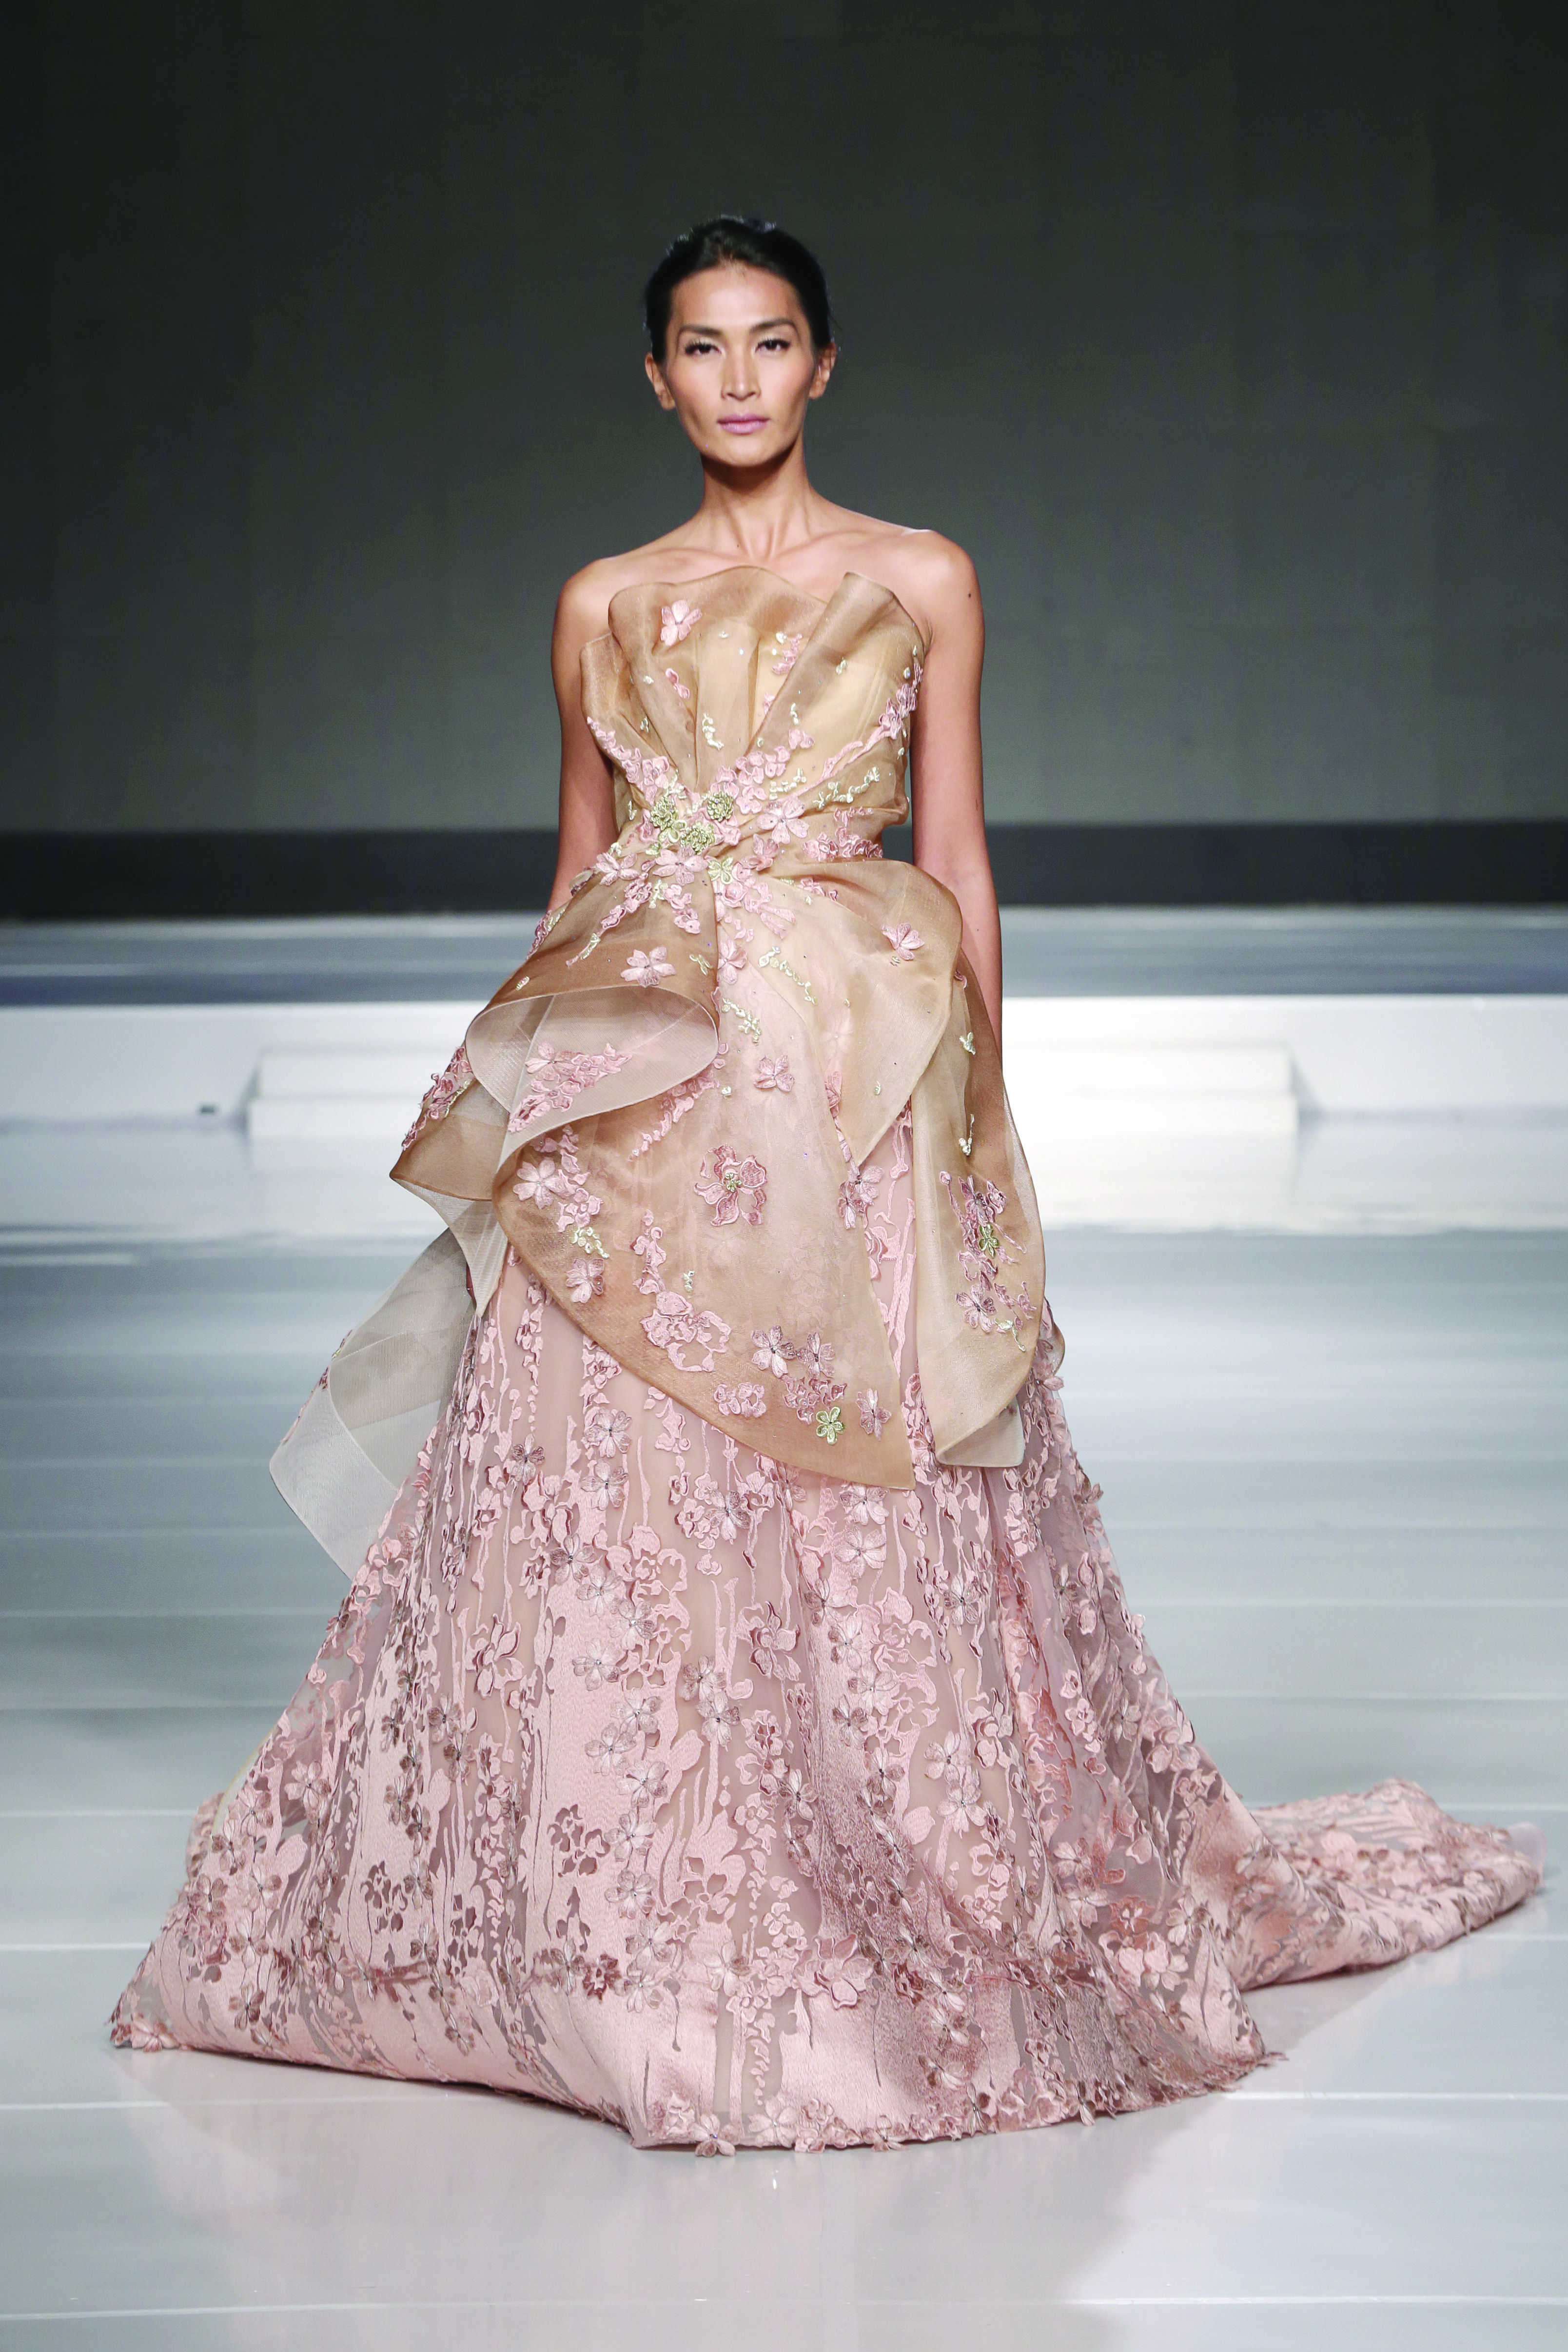 Provocate by Melta Tan | To Sort Designers | Pinterest | Designers